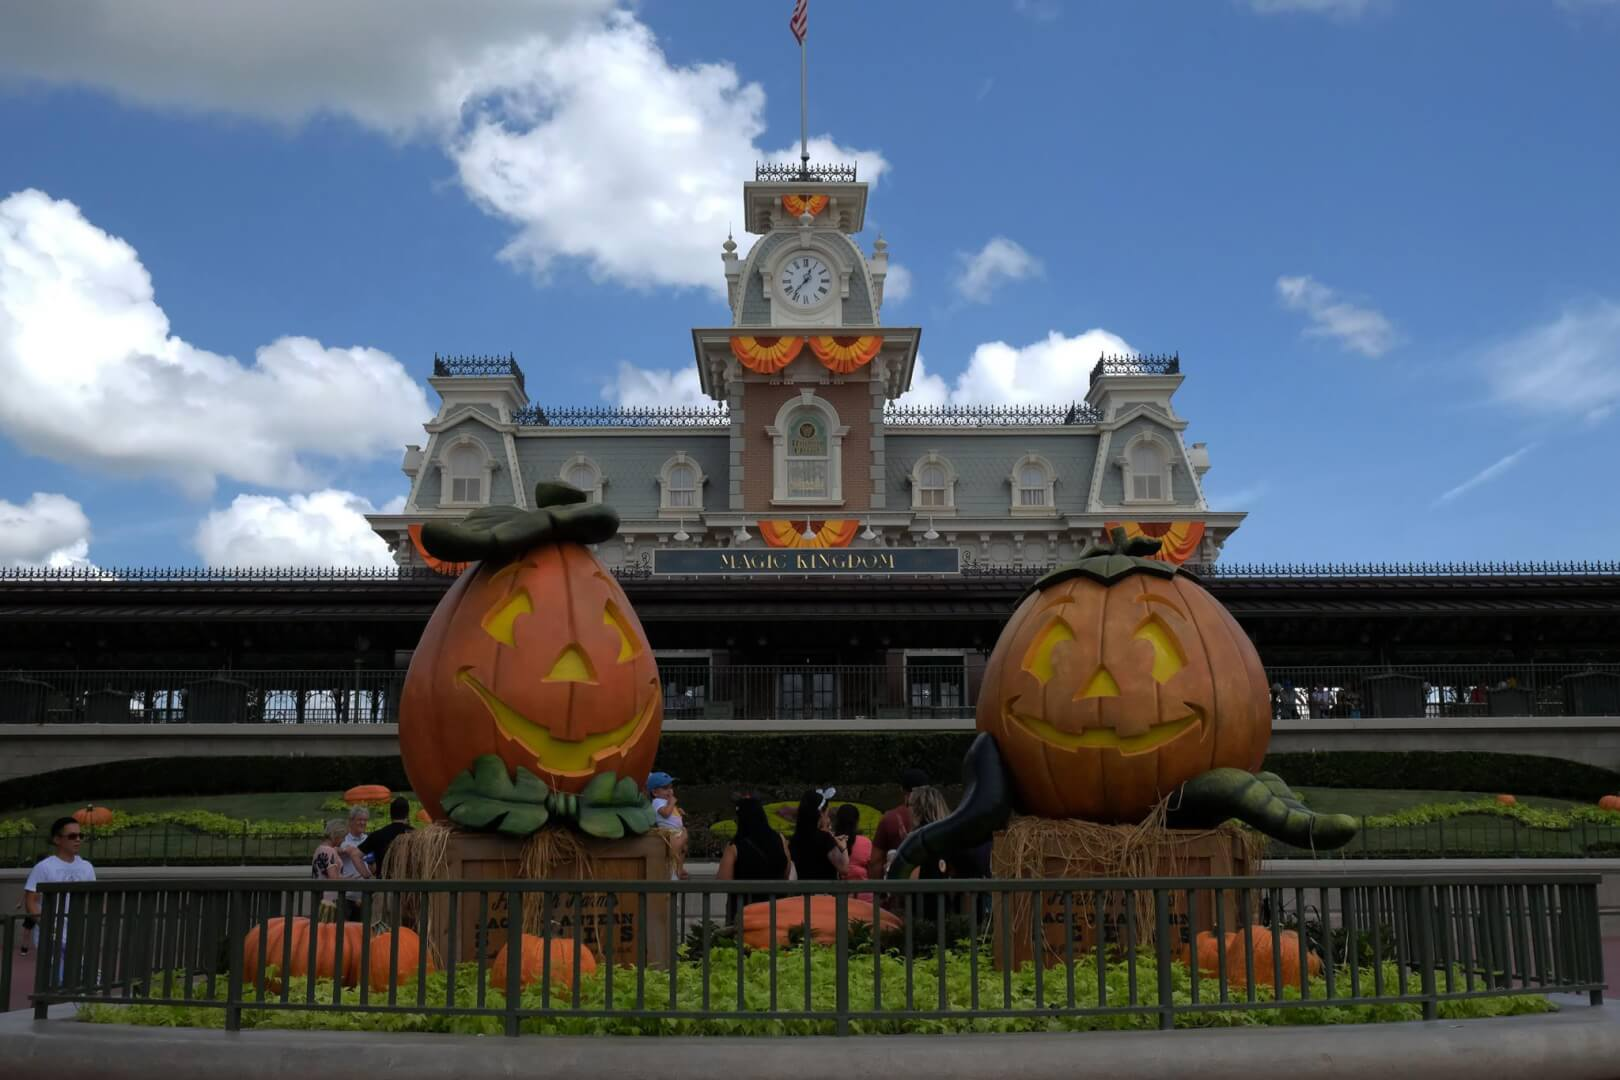 jack olanterns are a common design element of magic kingdoms halloween and fall themed decorations which can be found throughout the park - Disney World Halloween Decorations